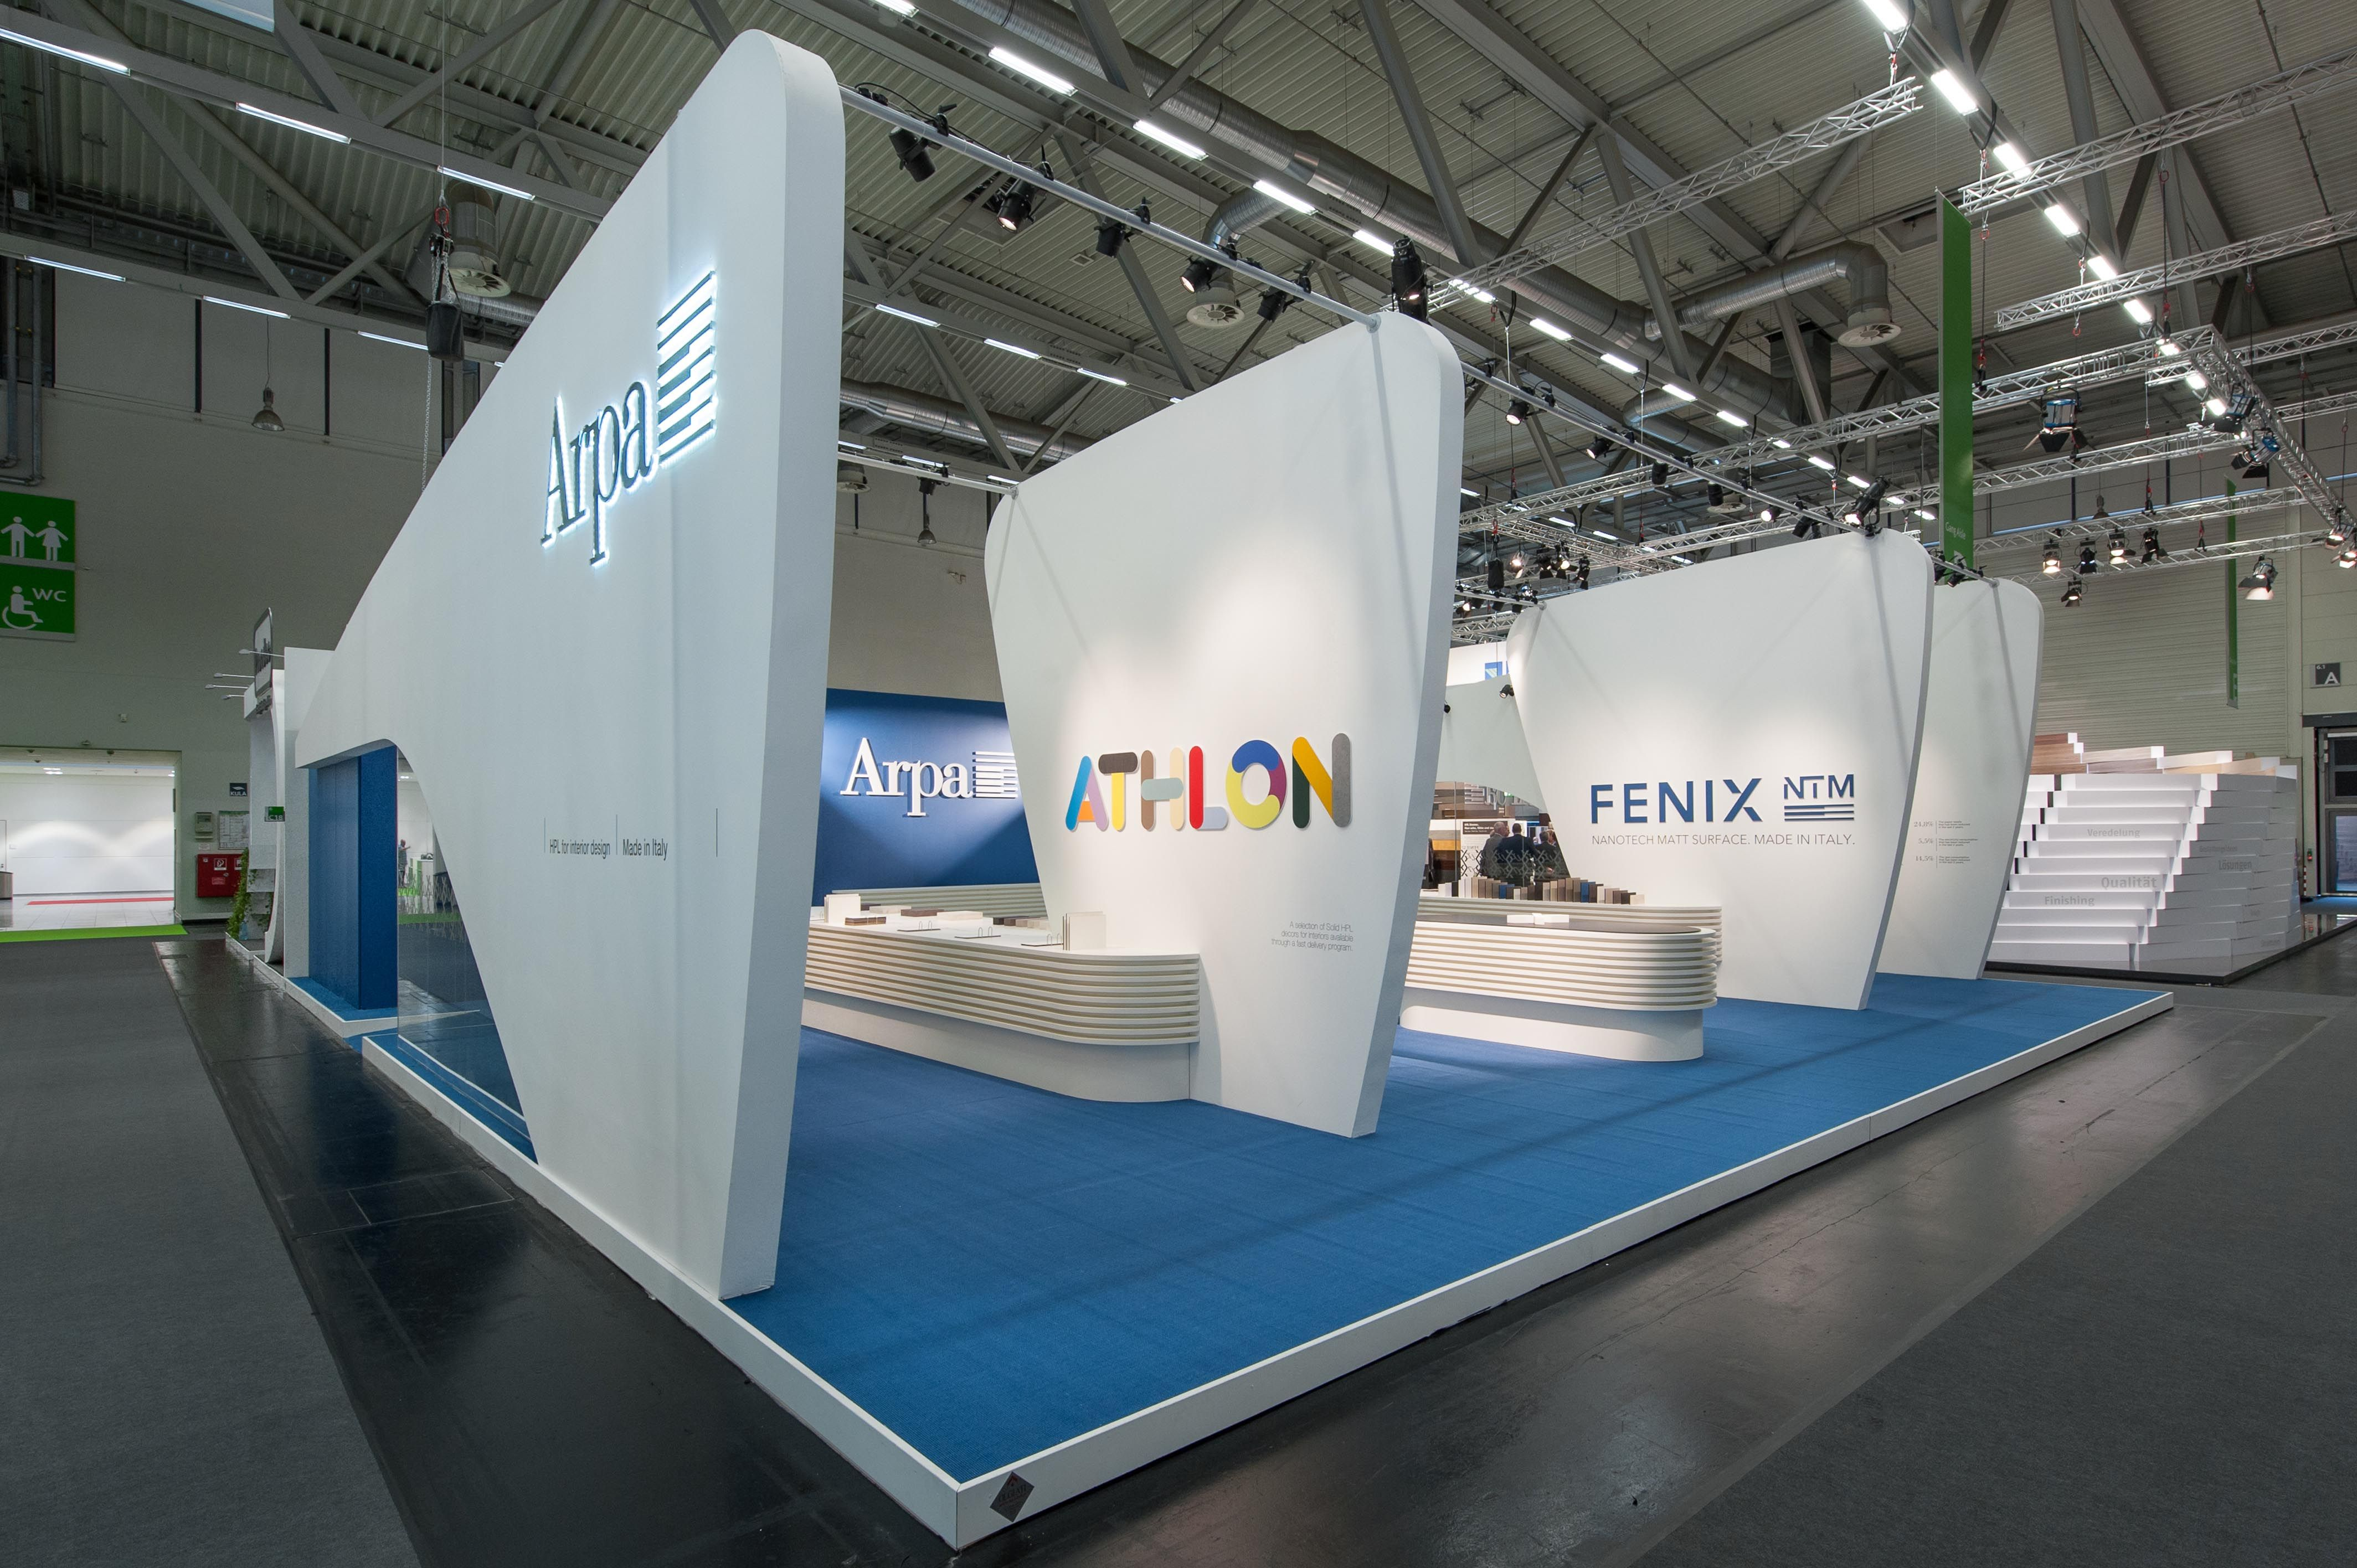 Exhibition Booth Inspiration : Exhibition booth design designs pinterest